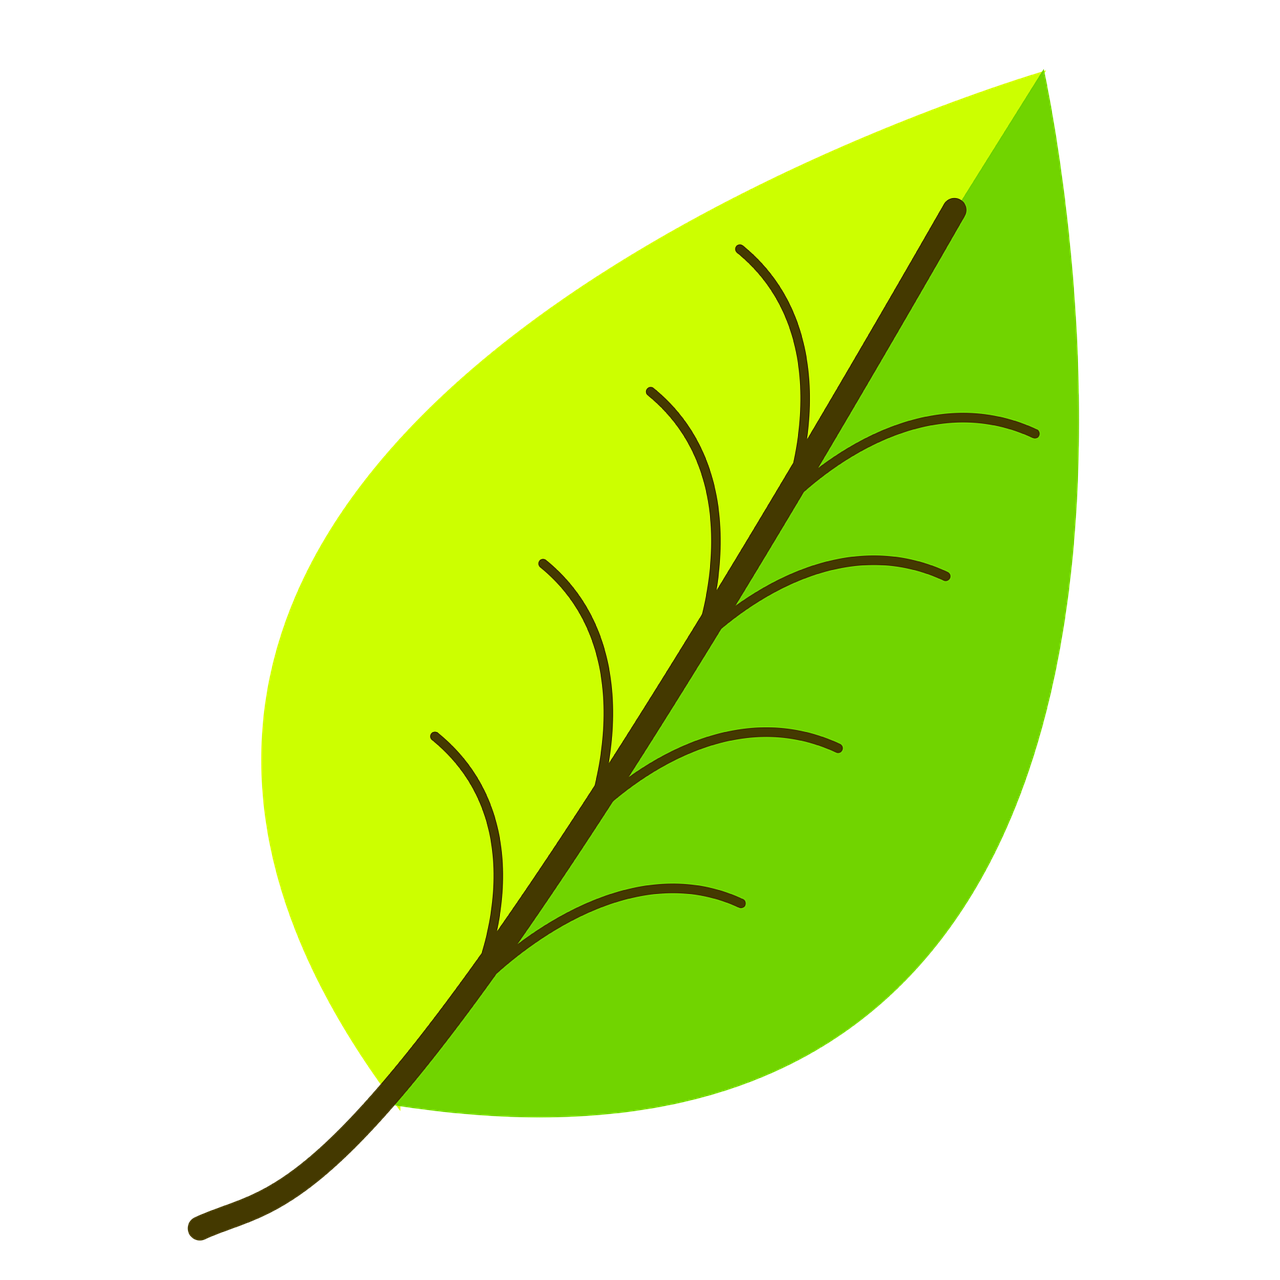 Uncategorized Leaves To Draw how to draw a leaf 19 ideas beautiful drawings of leaves 5 5